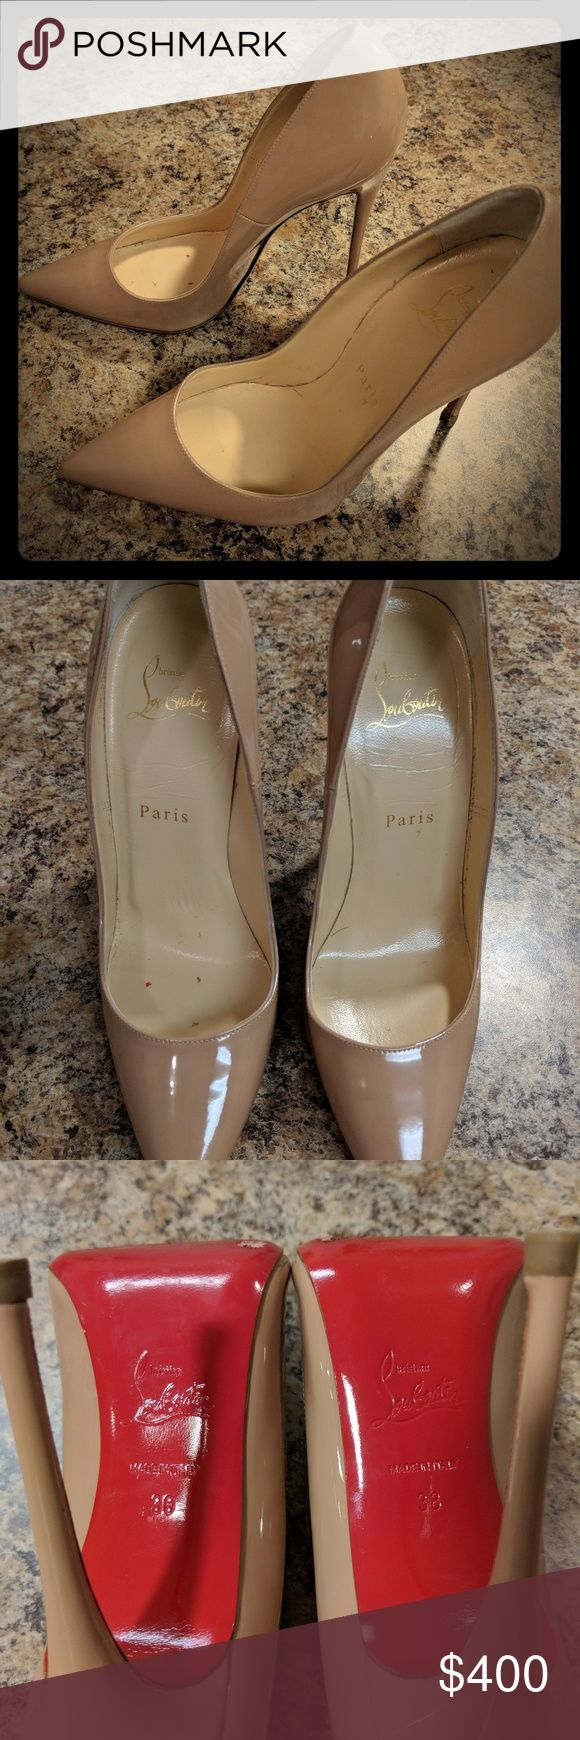 Nude So Kate sz 38 I only wore these a few times, in great shape with the classic red bottoms still looking good. The nude color goes with everything! These will be great for holiday parties and New Years! I don't have the box or dust bag, price reflects that. Christian Louboutin Shoes Heels